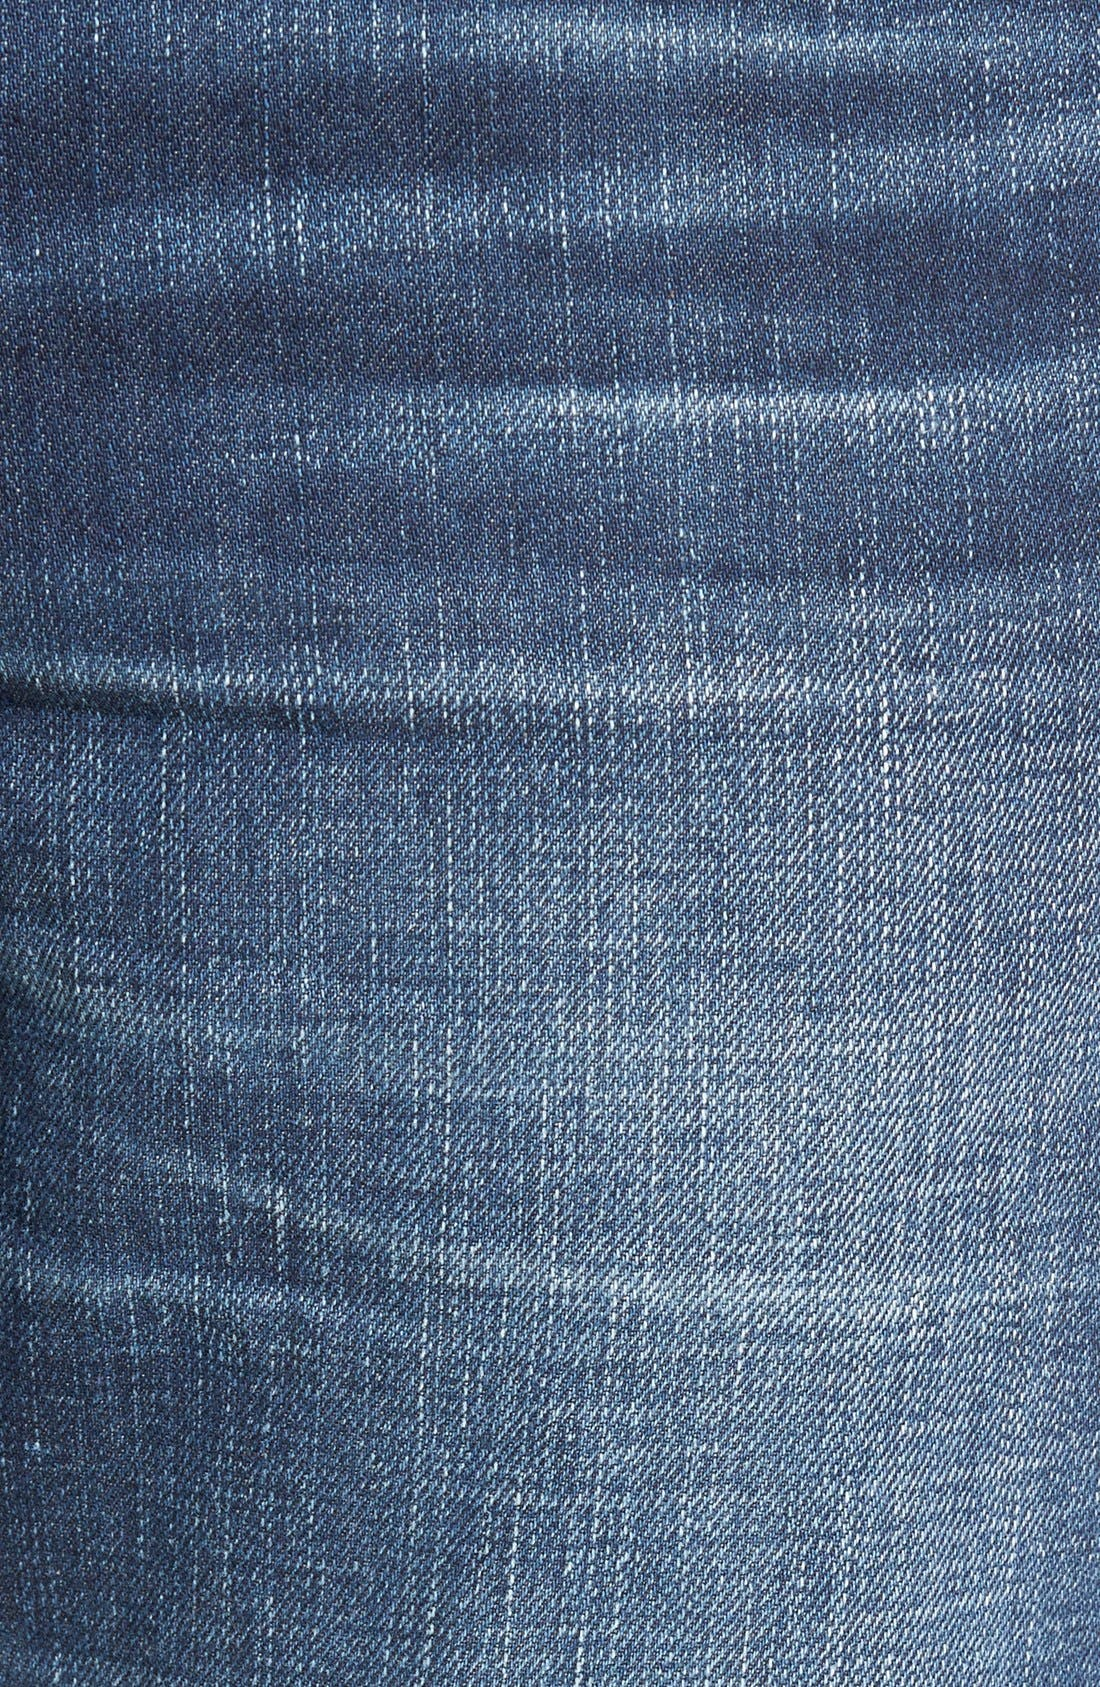 'Evans' Relaxed Fit Jeans,                             Alternate thumbnail 3, color,                             DERBY